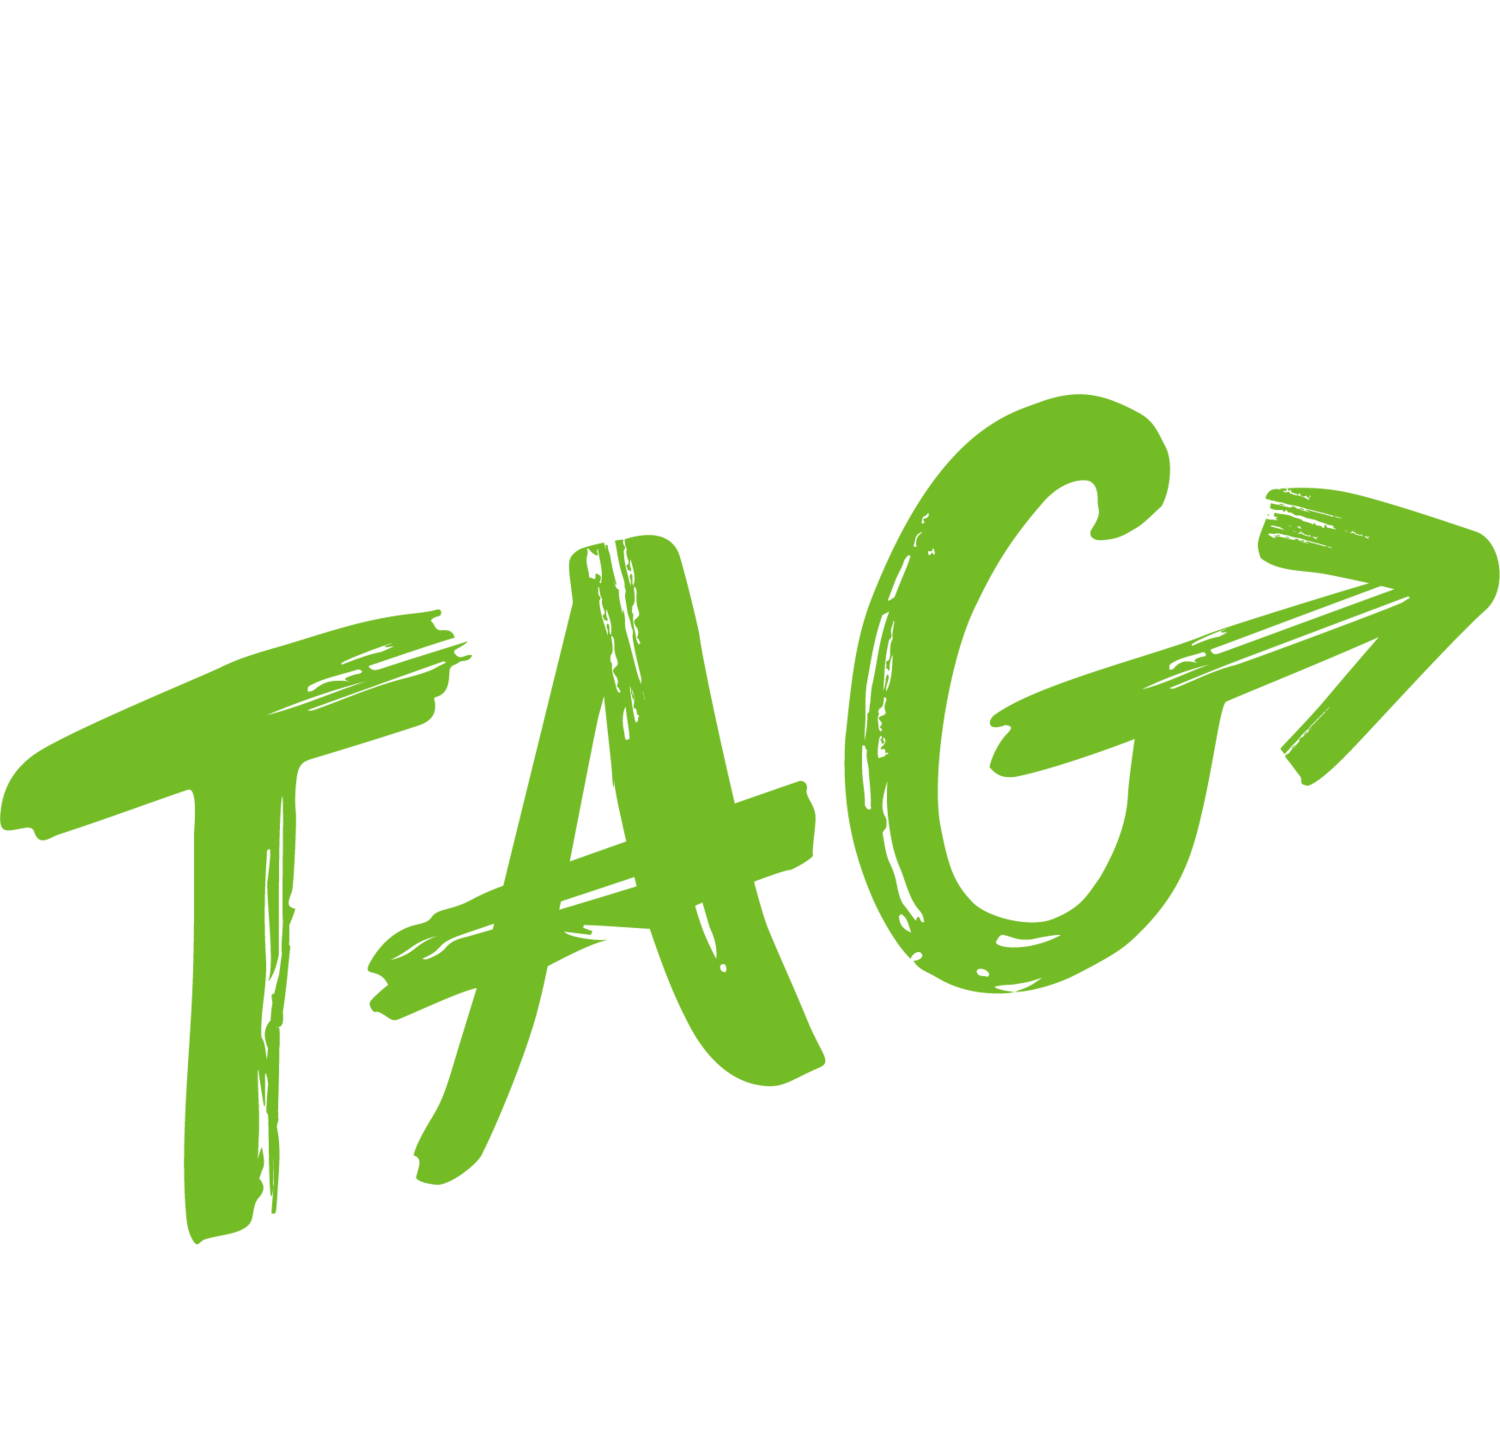 Taking Action for Good